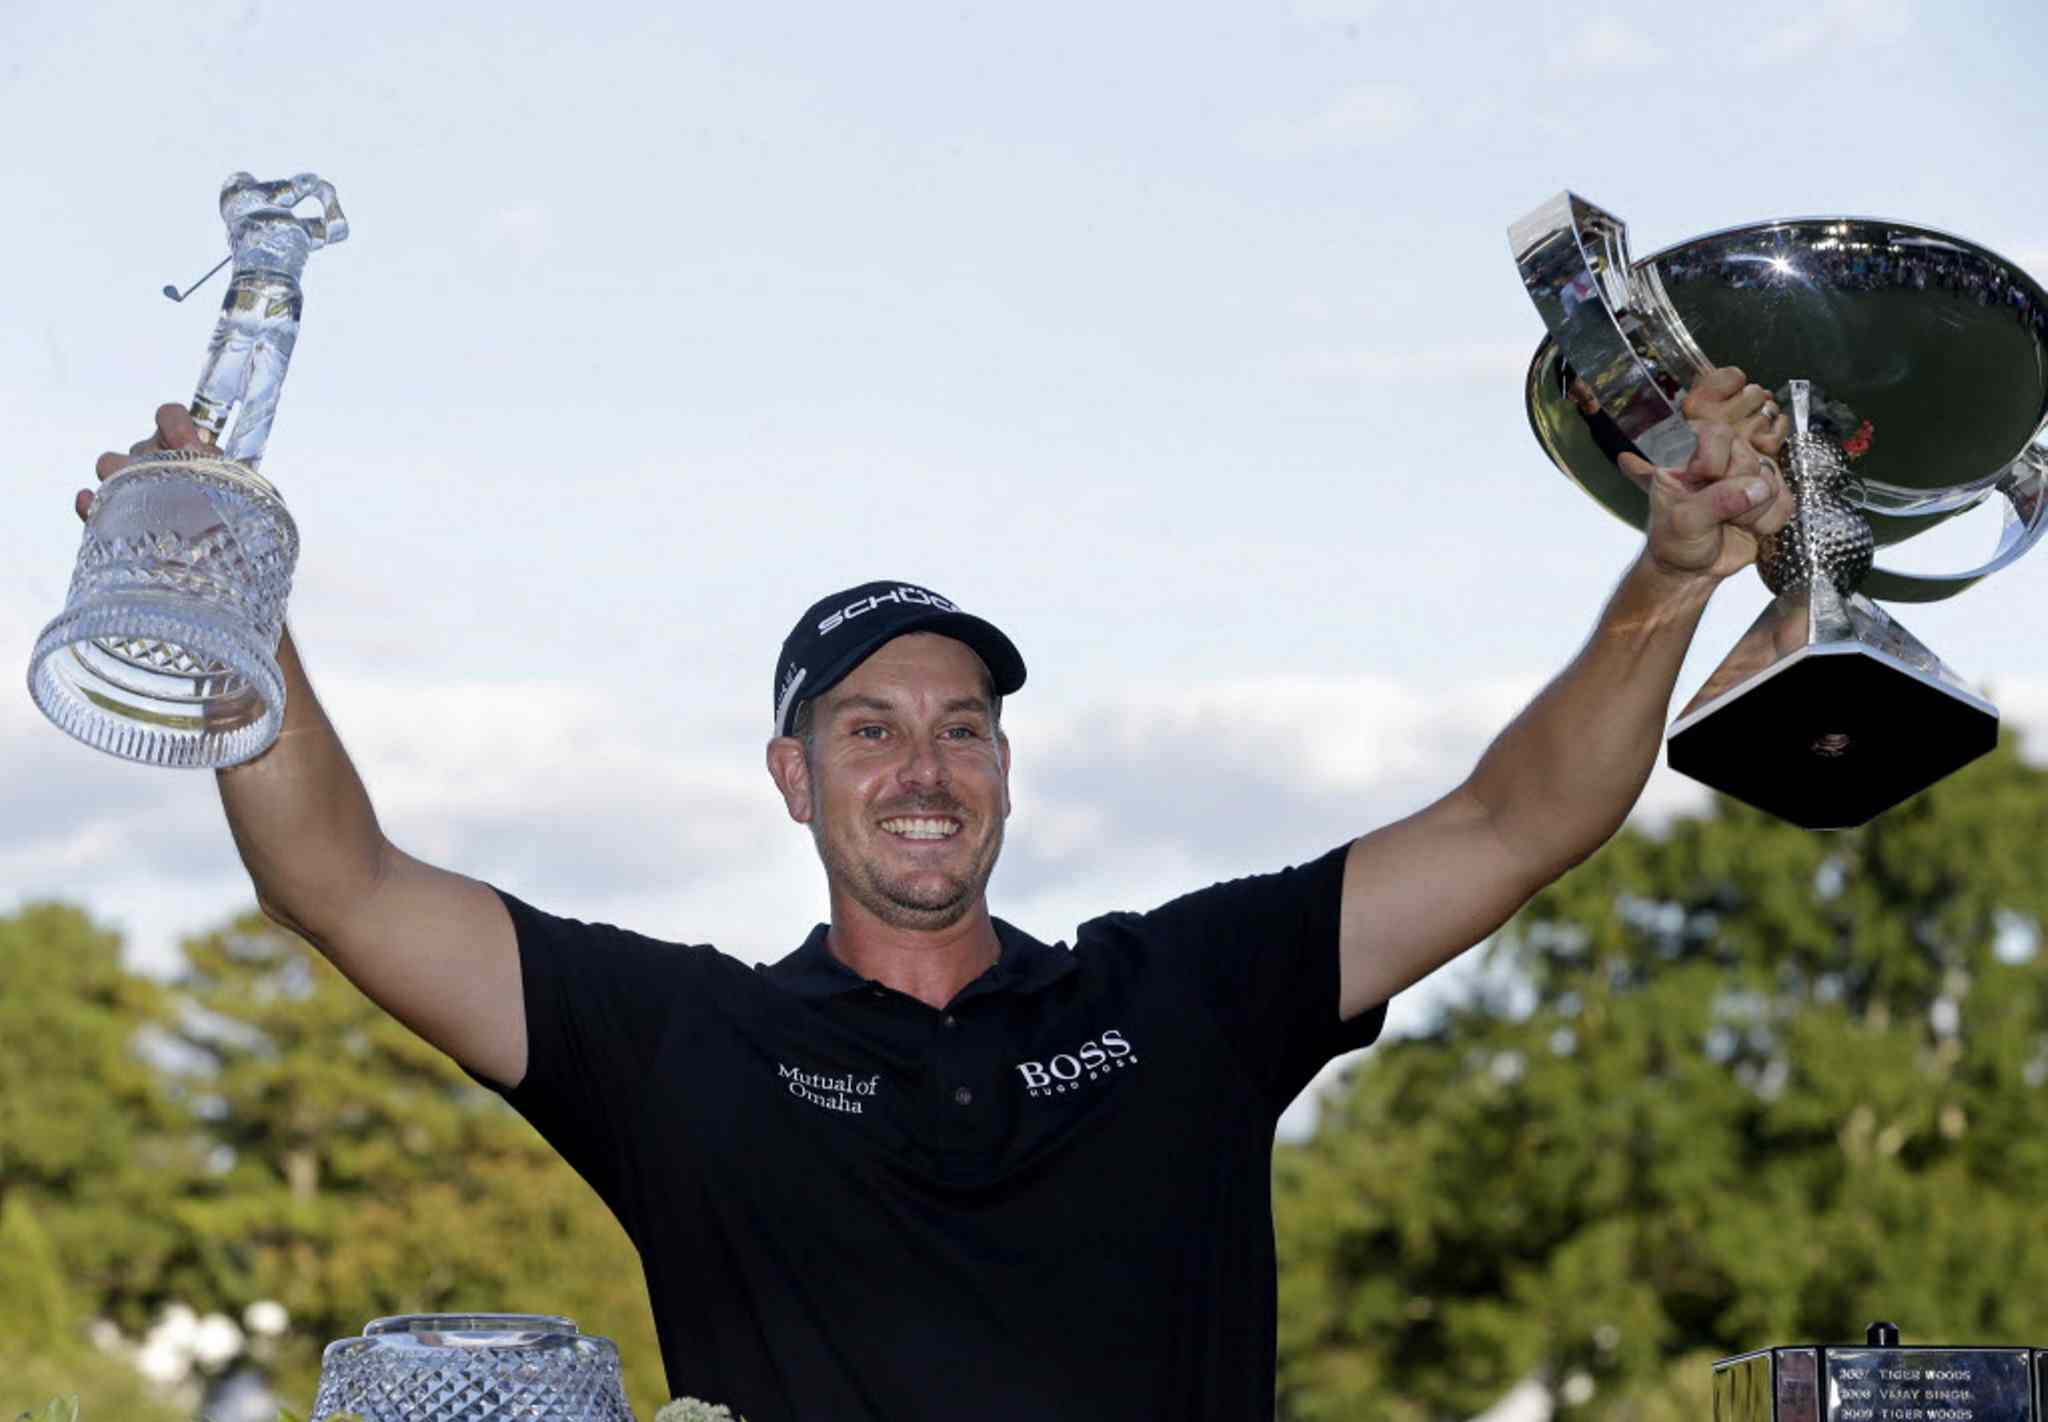 Henrik Stenson has his hands full of hardware Sunday afternoon at East Lake. The Swede won both the Tour Championship and FedEx Cup.